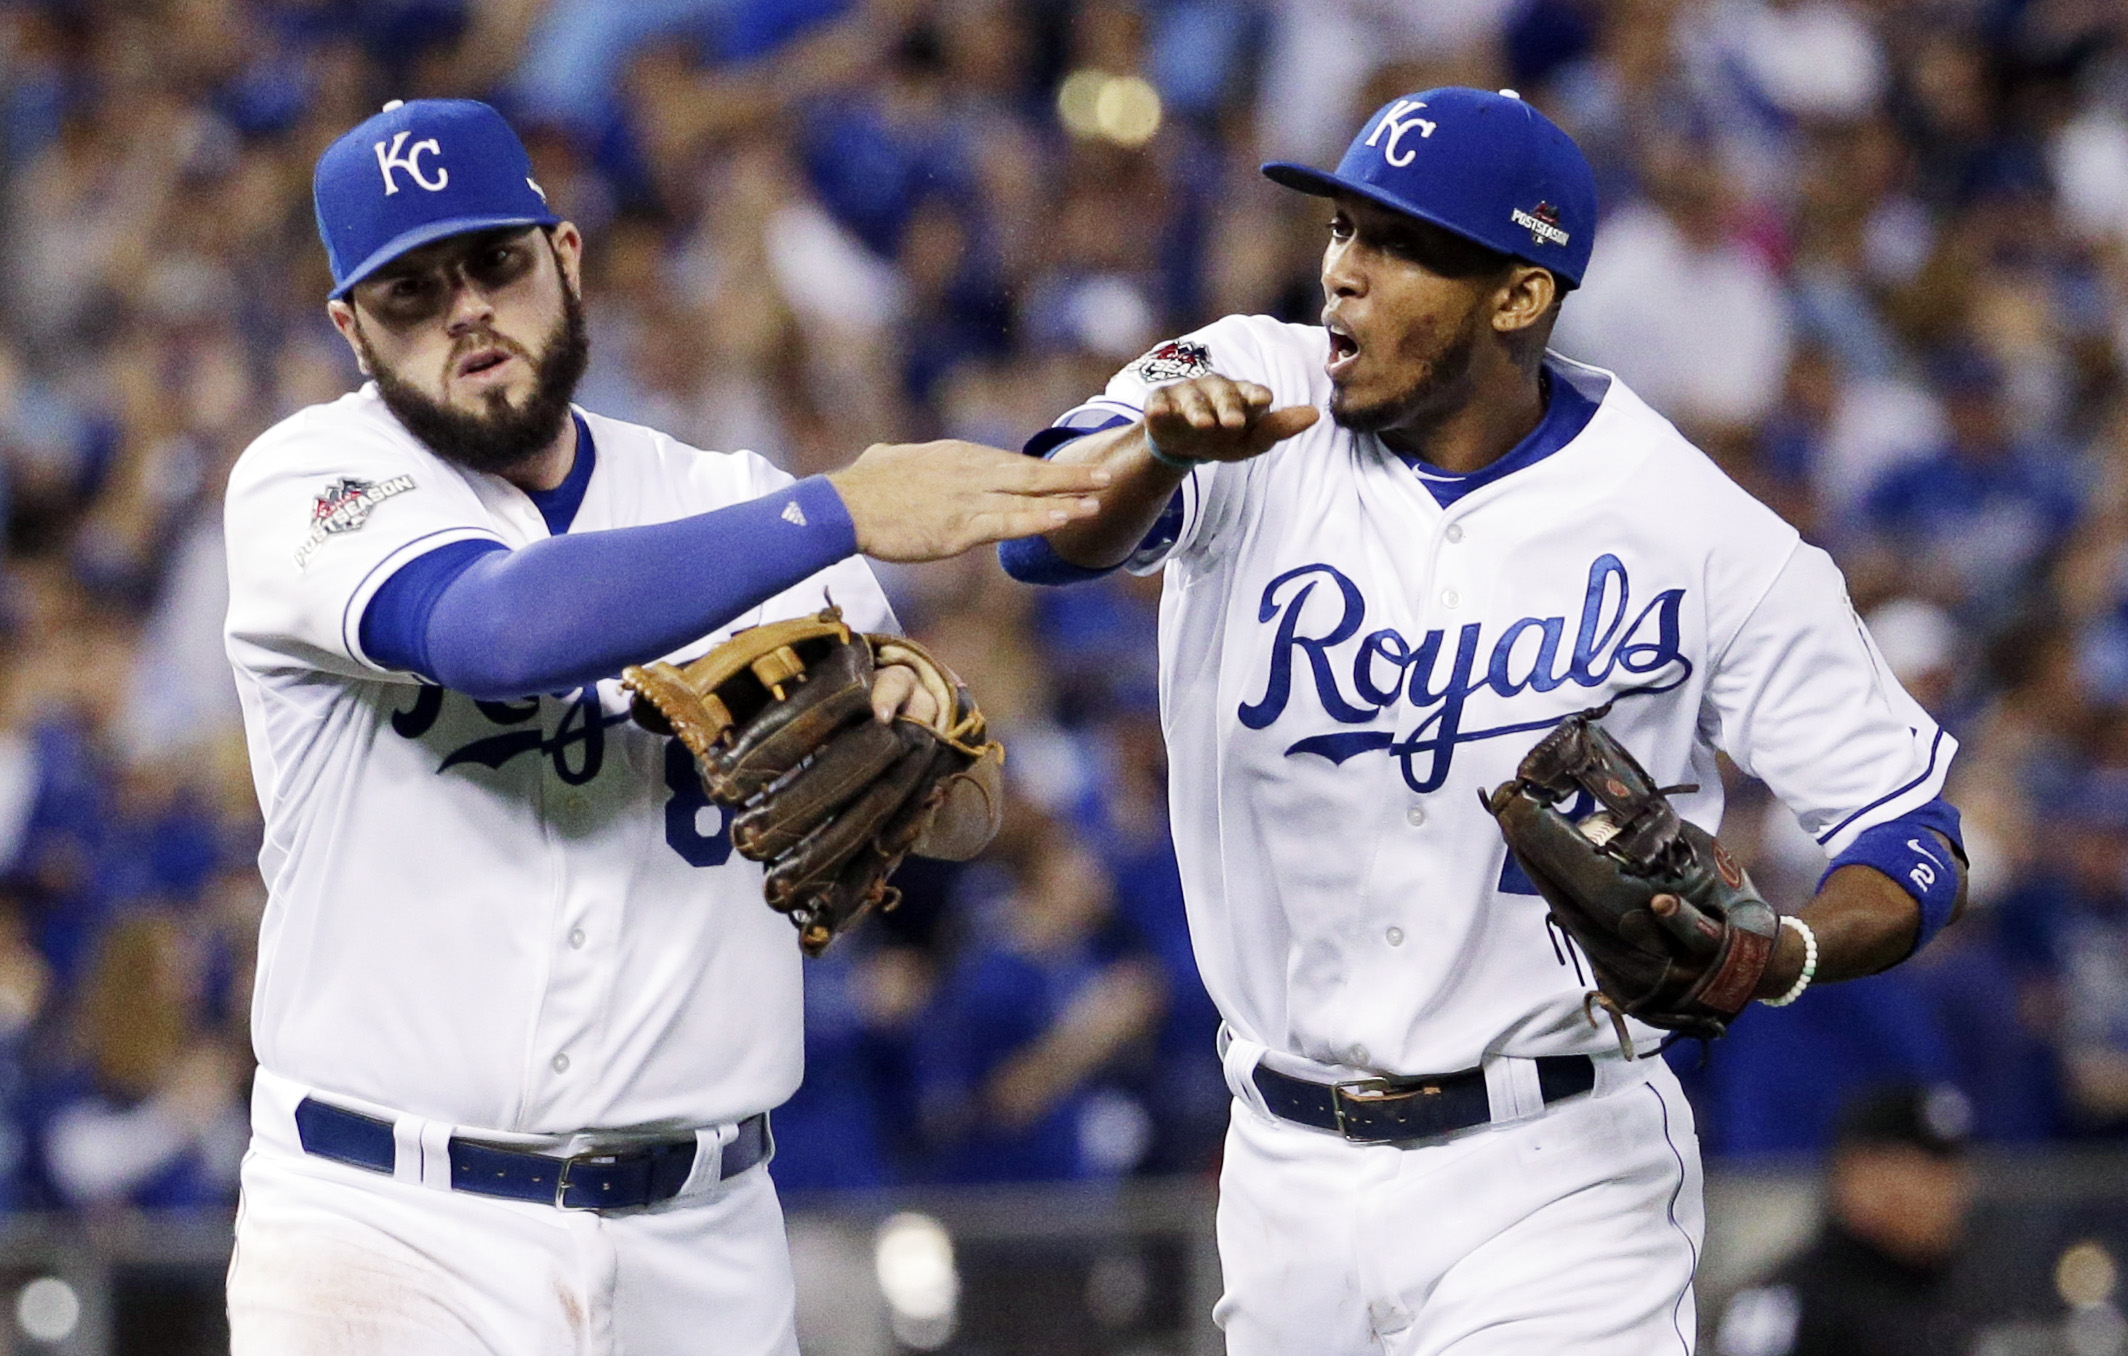 Kansas City Royals third baseman Mike Moustakas, let, and shortstop Alcides Escobar celebrates the end of the top of the fifth inning in Game 6 of baseball's American League Championship Series against the Toronto Blue Jays on Friday, Oct. 23, 2015, in Ka